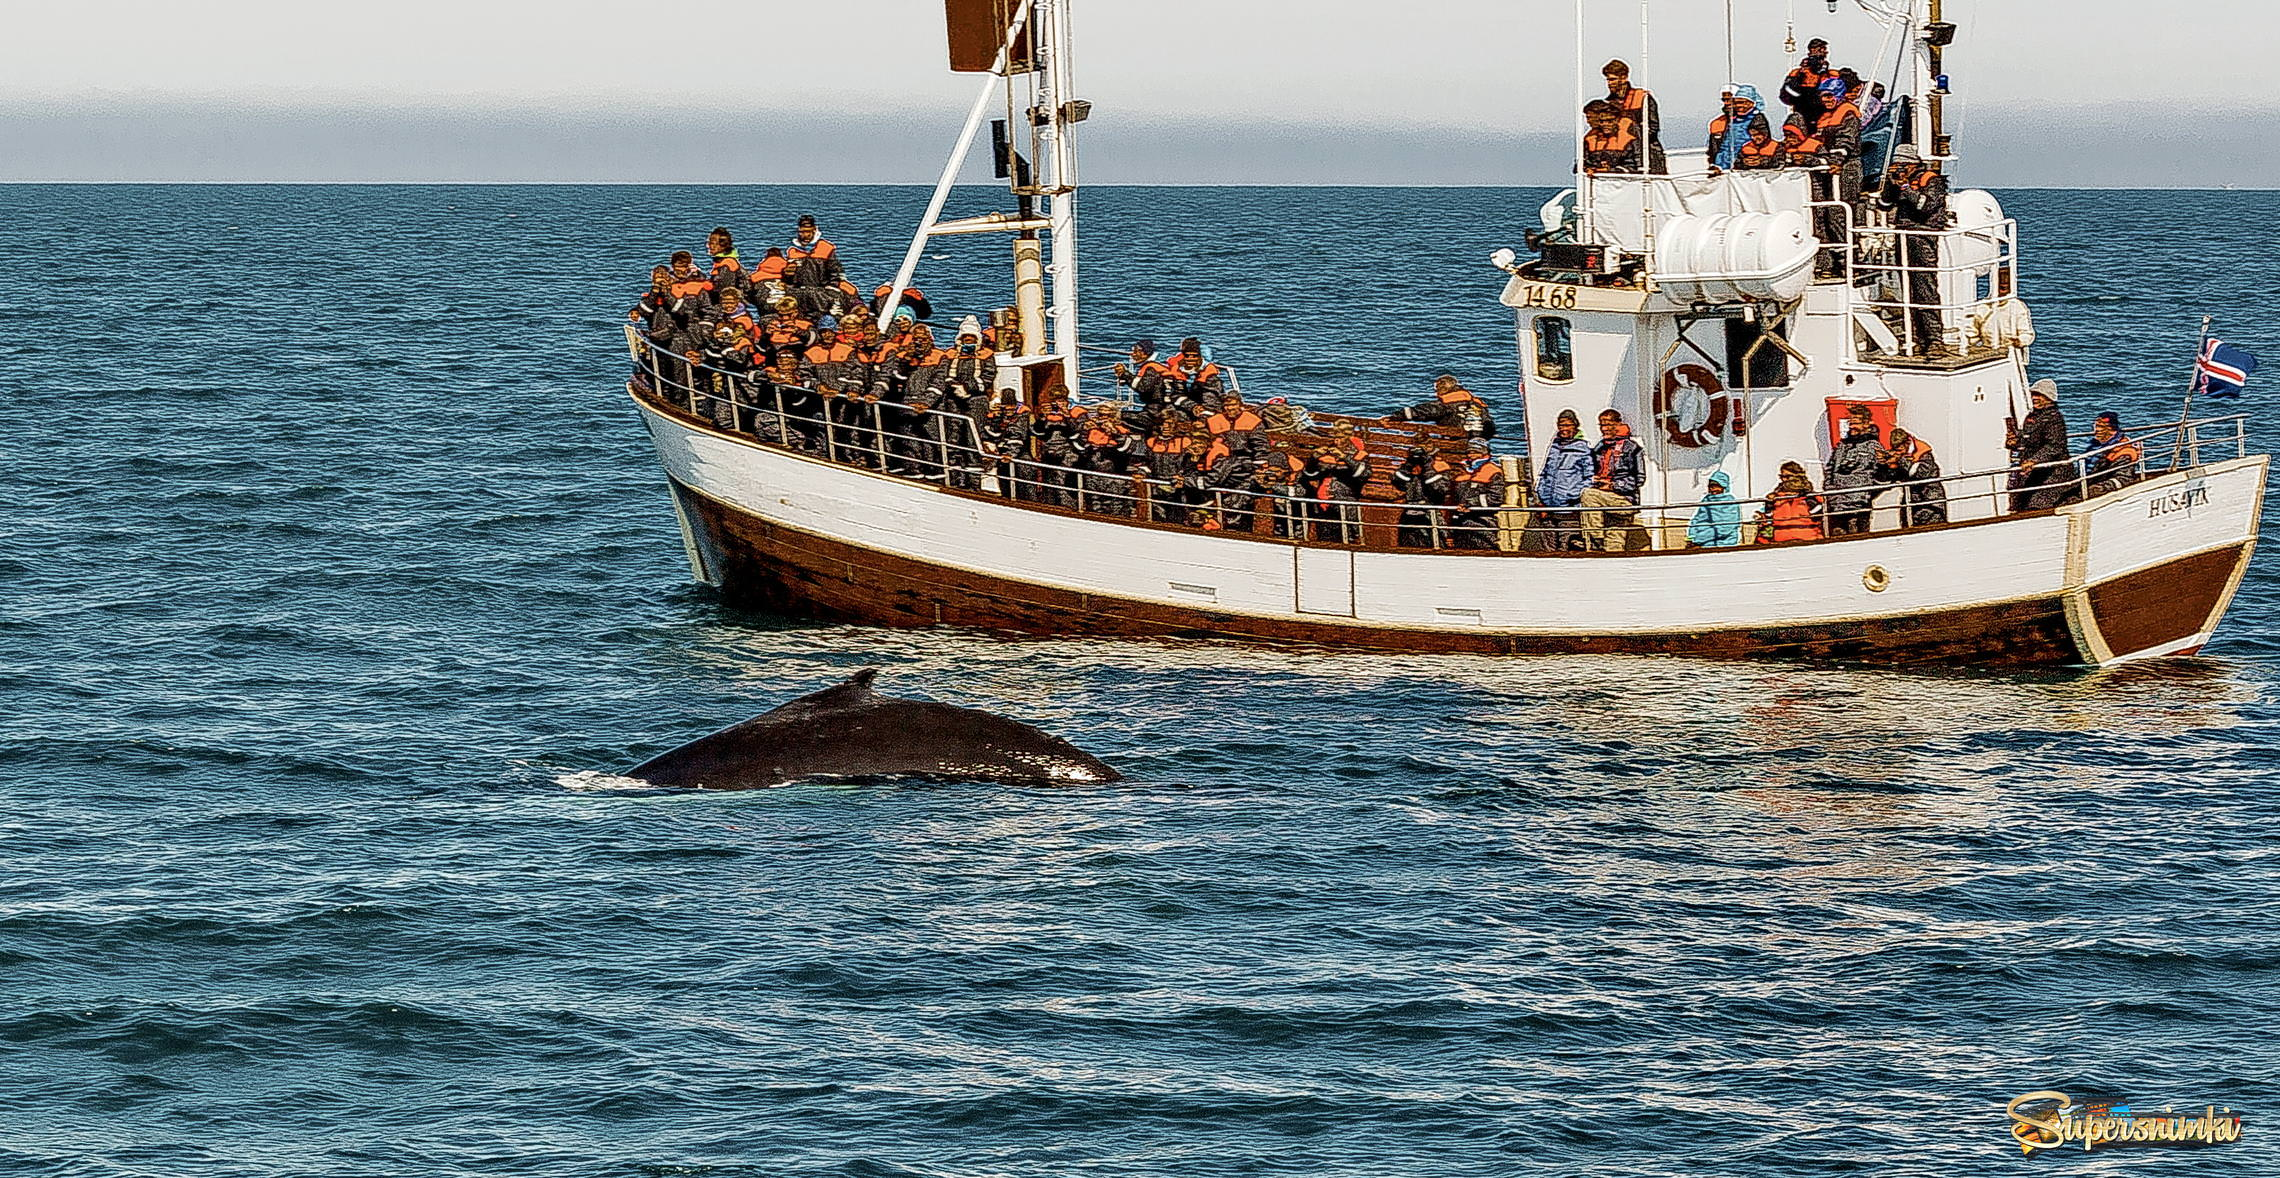 Iceland 07-2016 whales watching